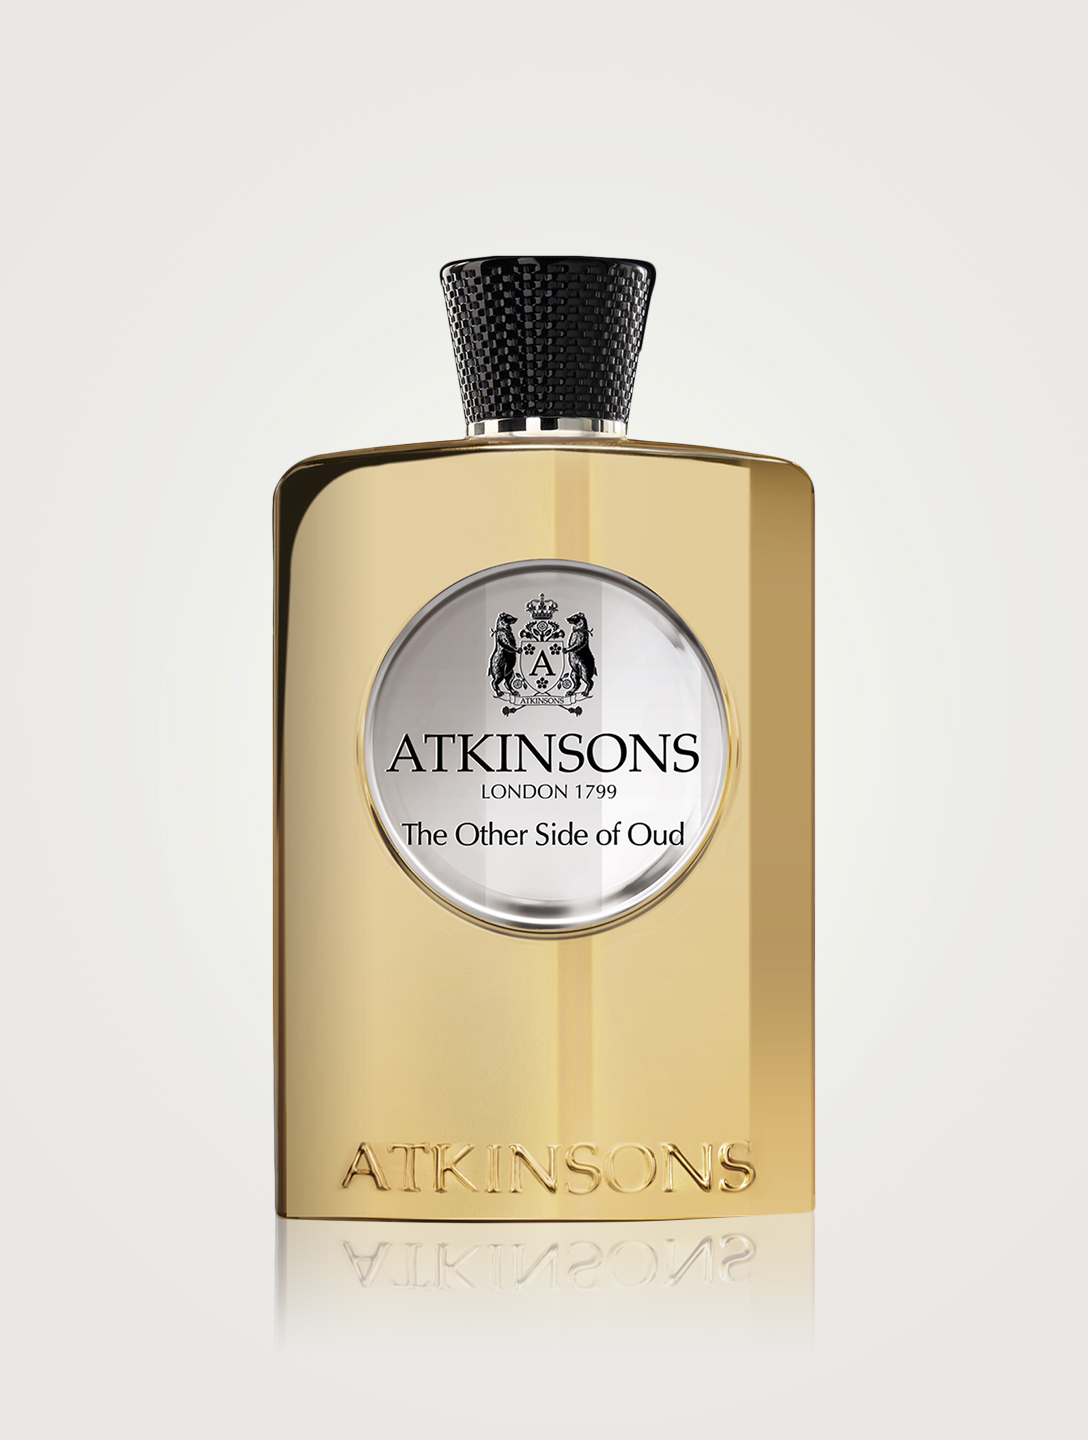 ATKINSONS The Other Side Of Oud Eau de Parfum Beauty